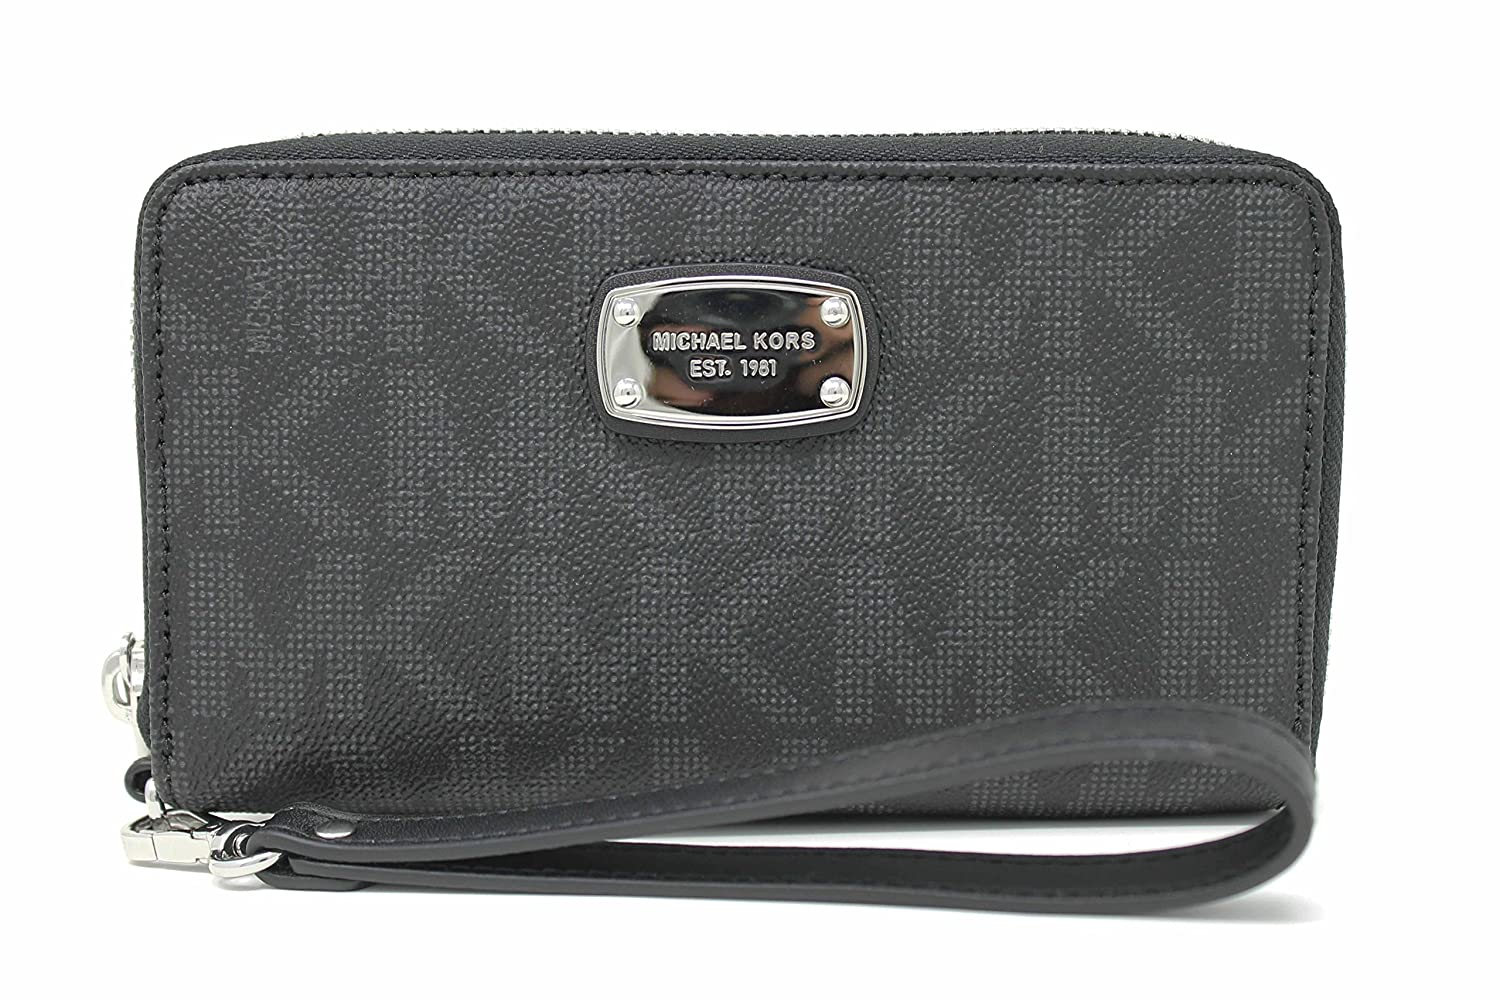 cd8d5f26cc9e Michael Kors Jet Set Item Large Flat Multifunction Phone Wristlet Case Black  35H5SJSZ3B ...